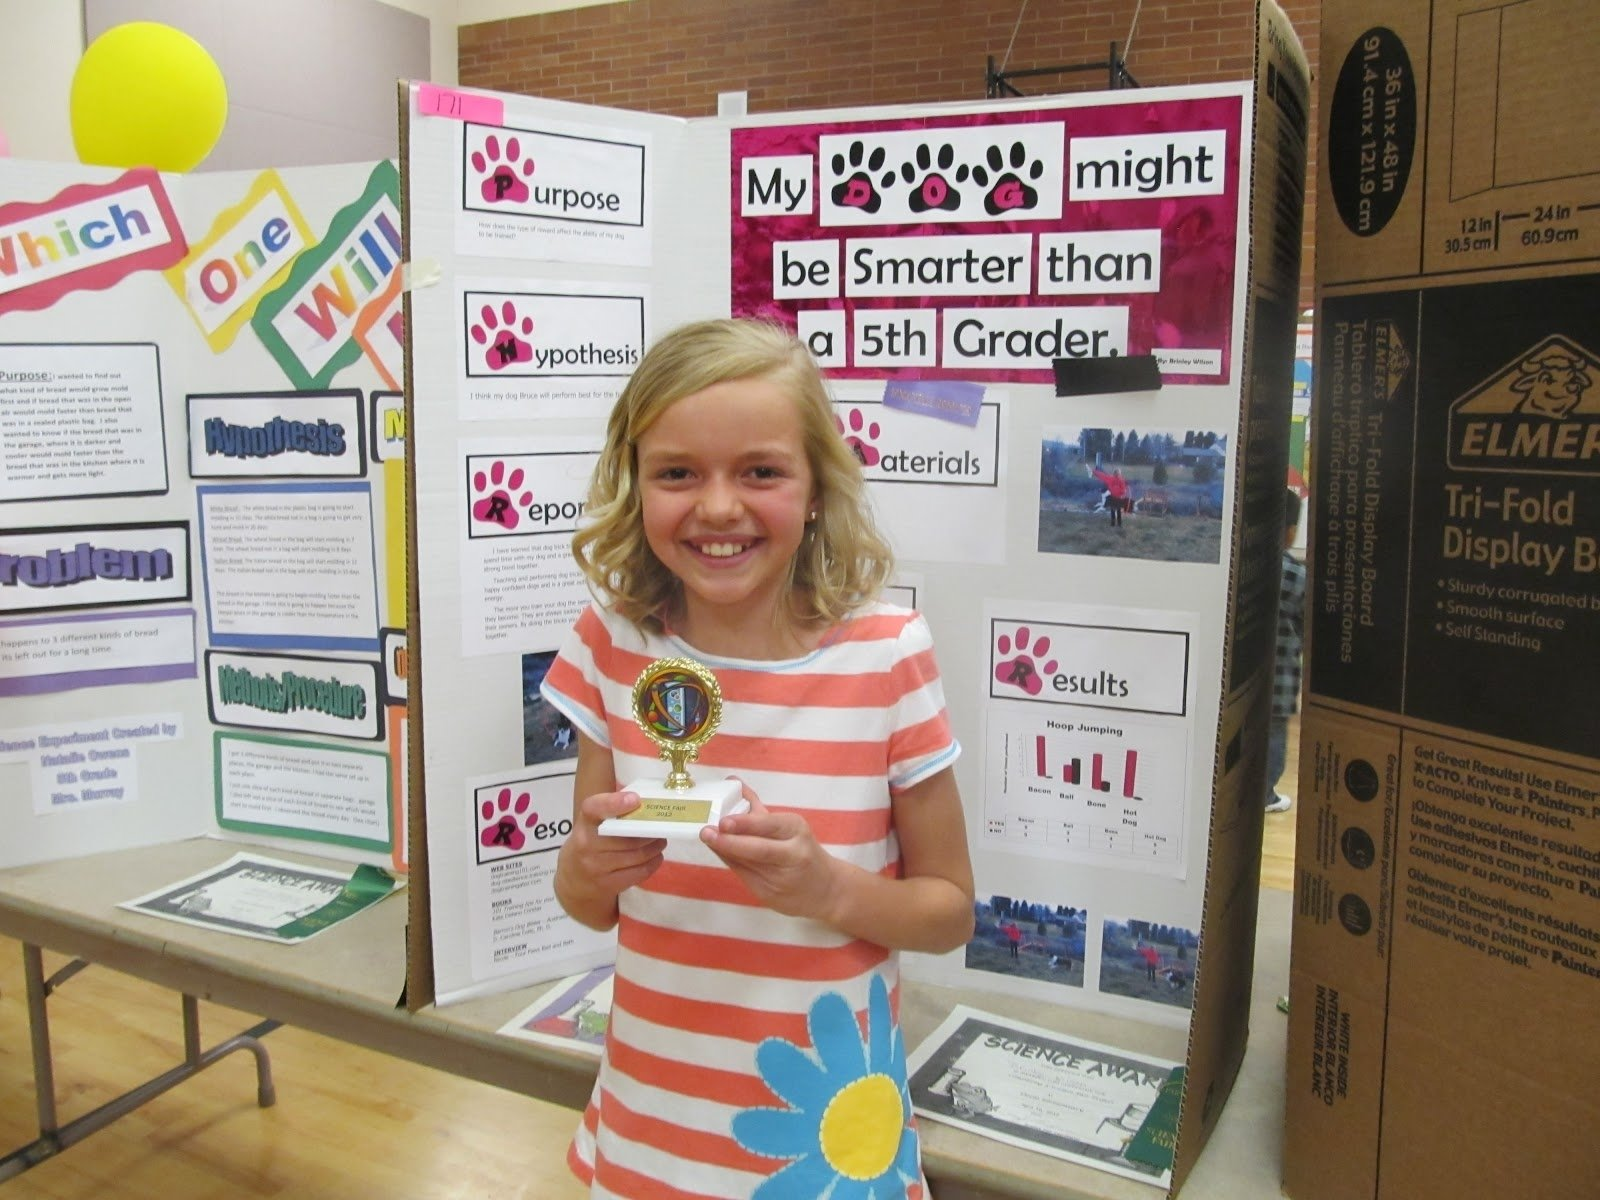 10 Awesome Science Fair Ideas For 5Th Grade science fair projects on space kids online science experiment